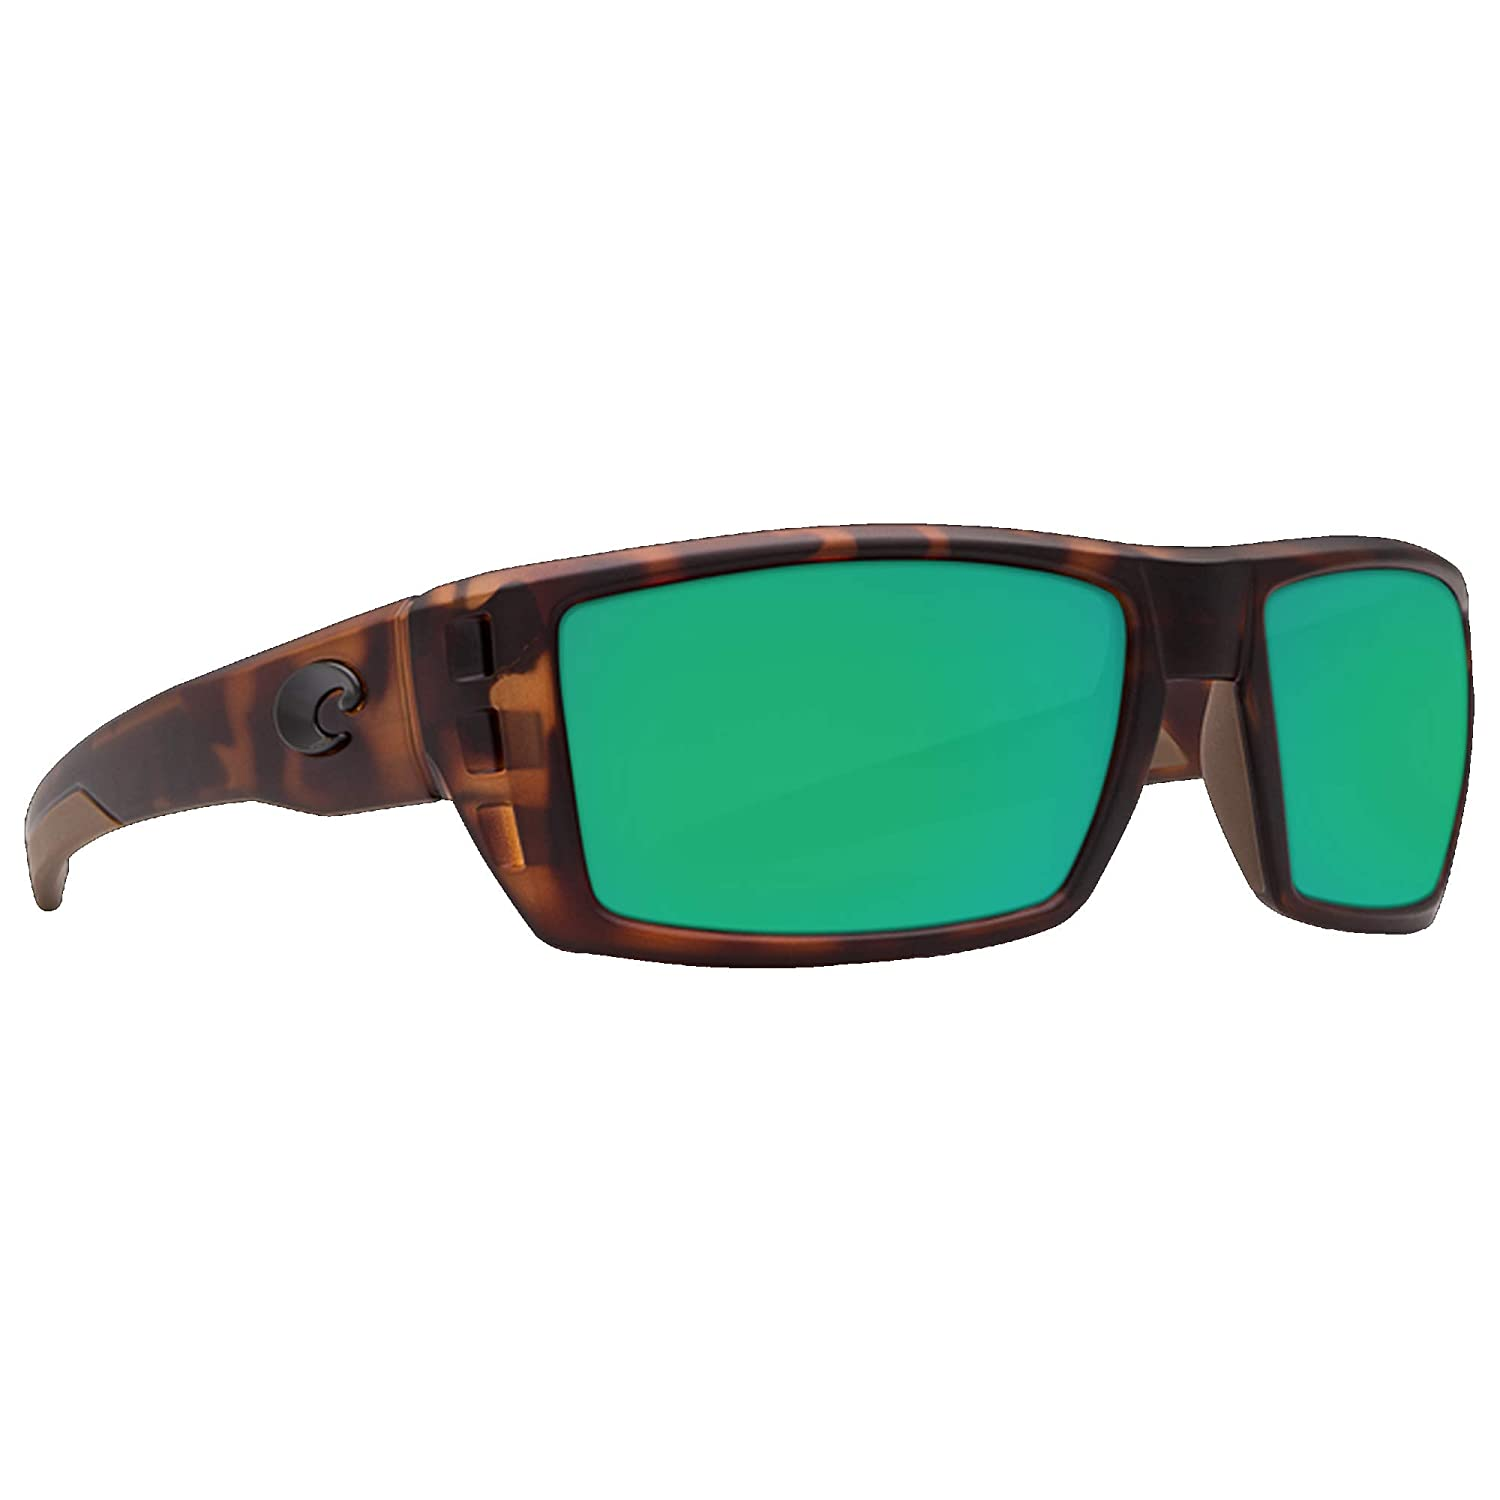 87c2f3aa12e Costa Del Mar Rafael Sunglasses